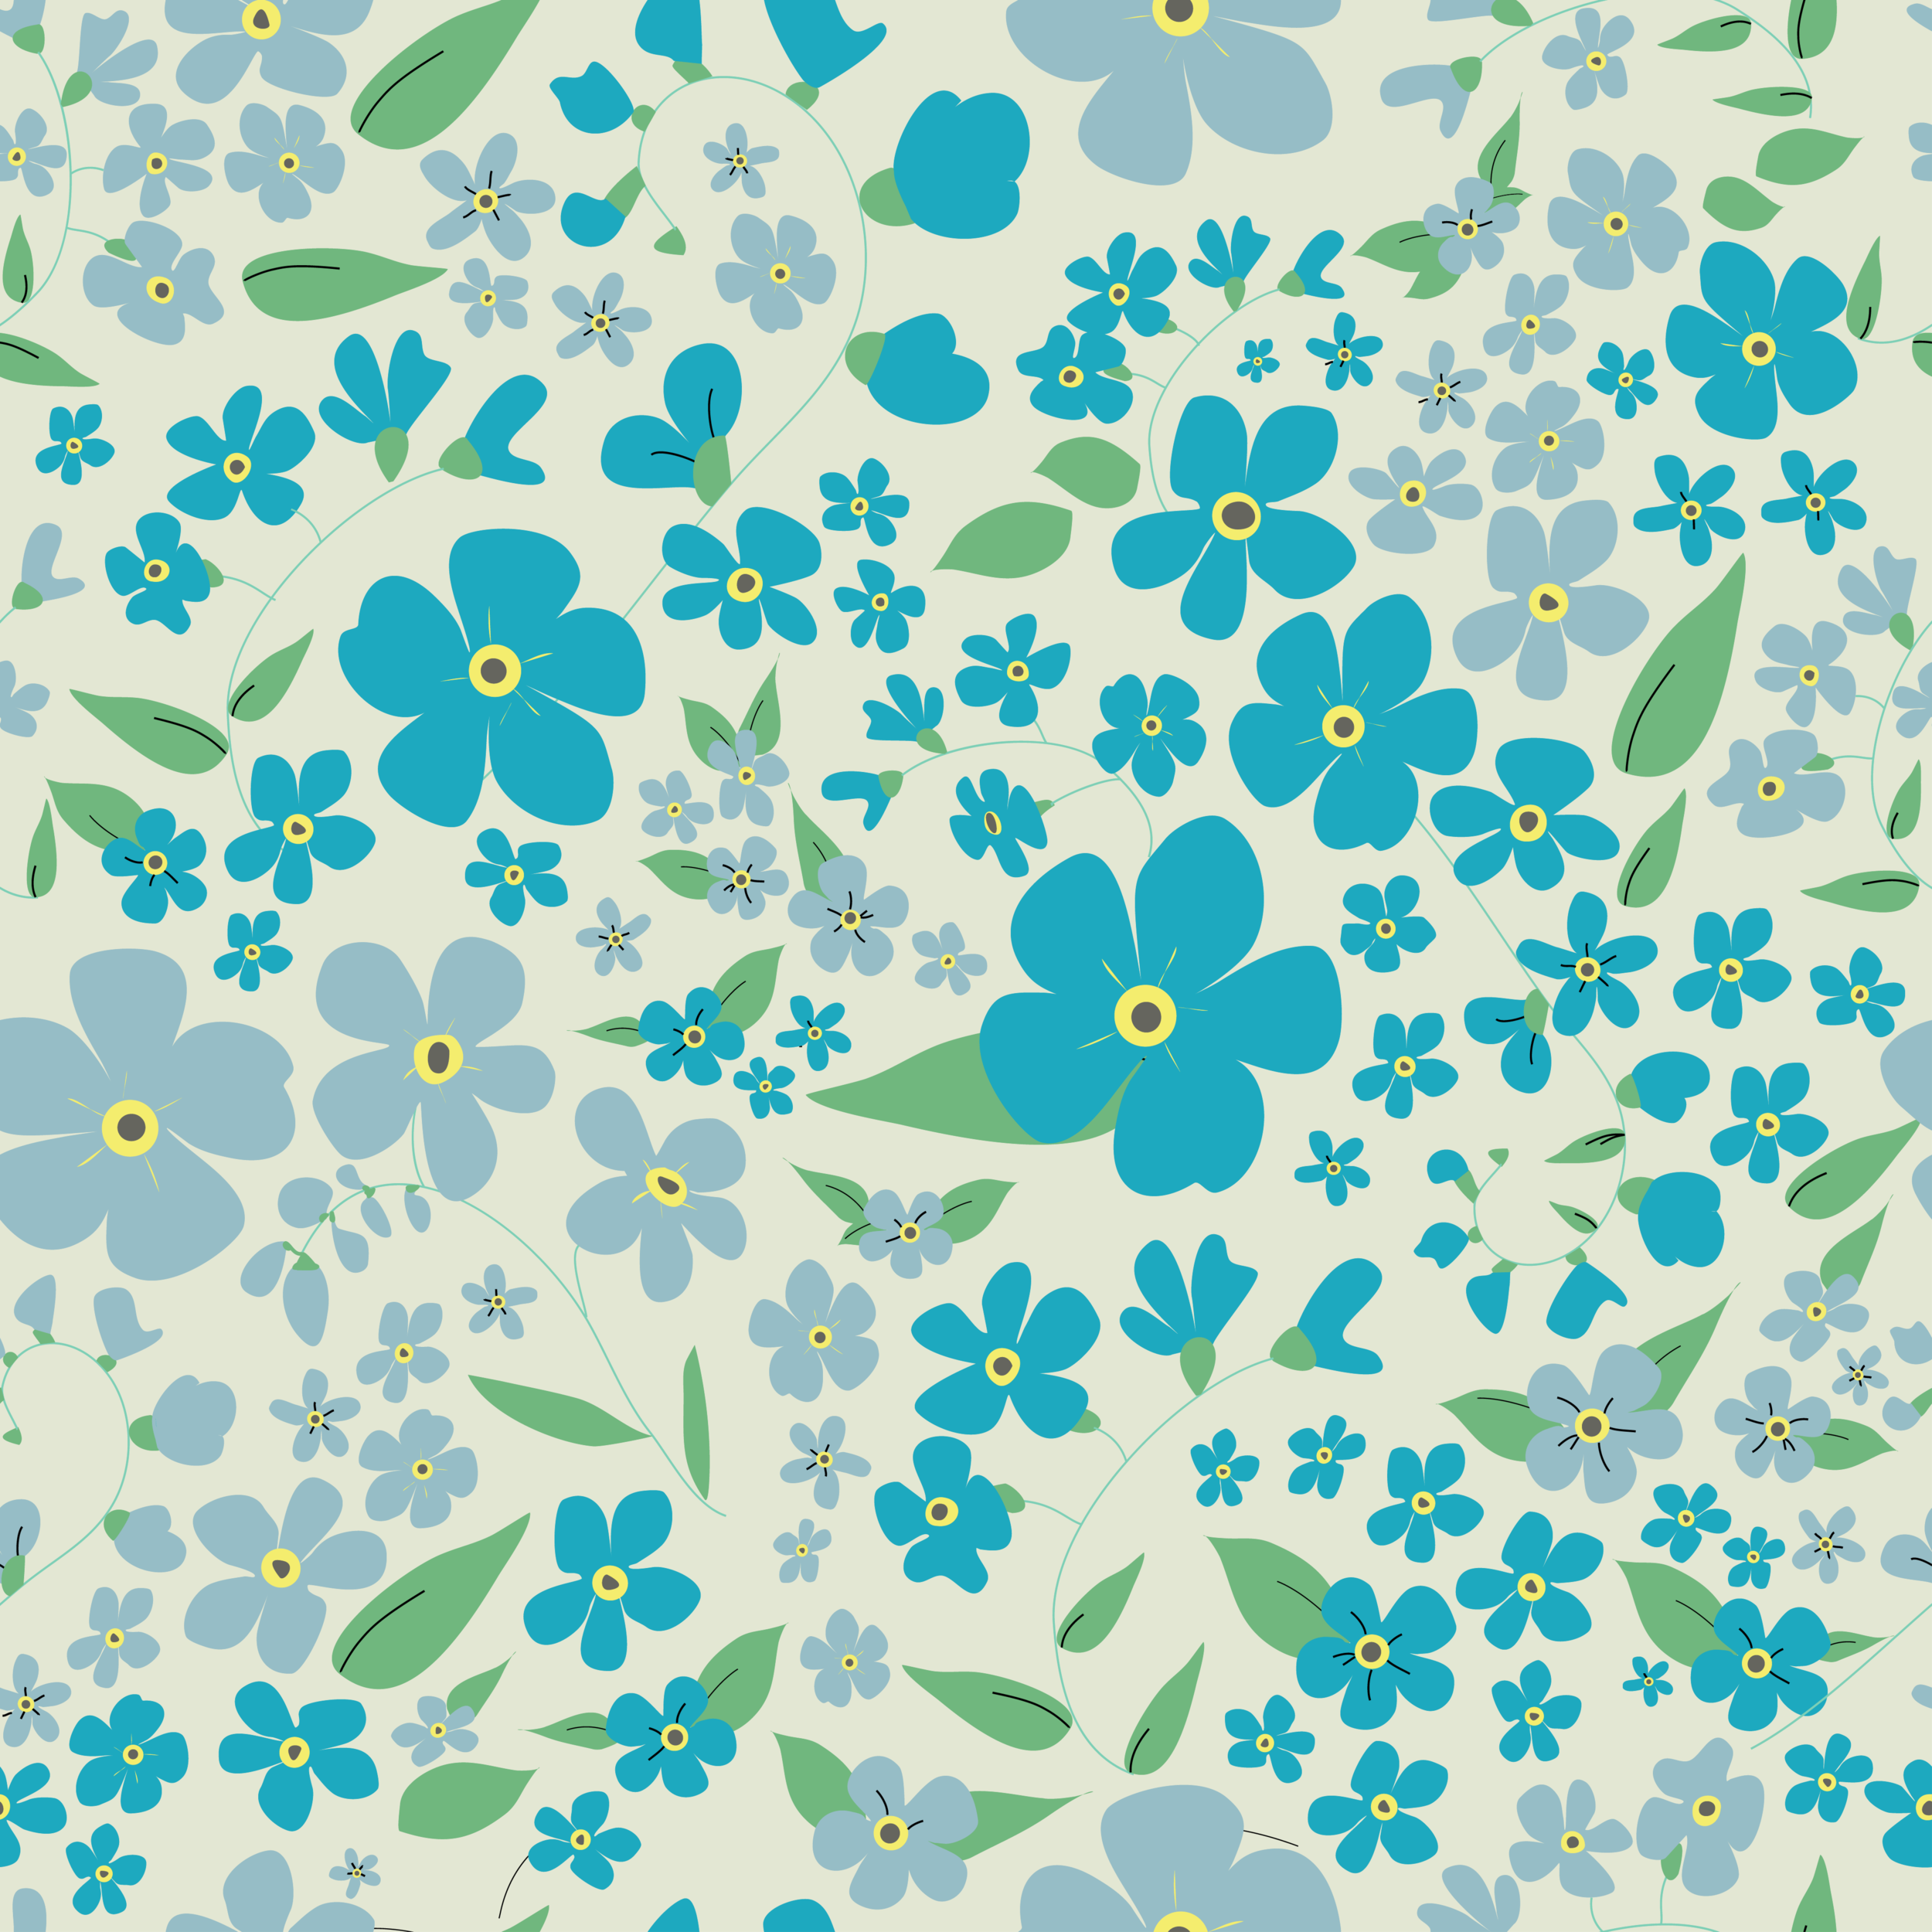 Forget-me-nots repeat pattern